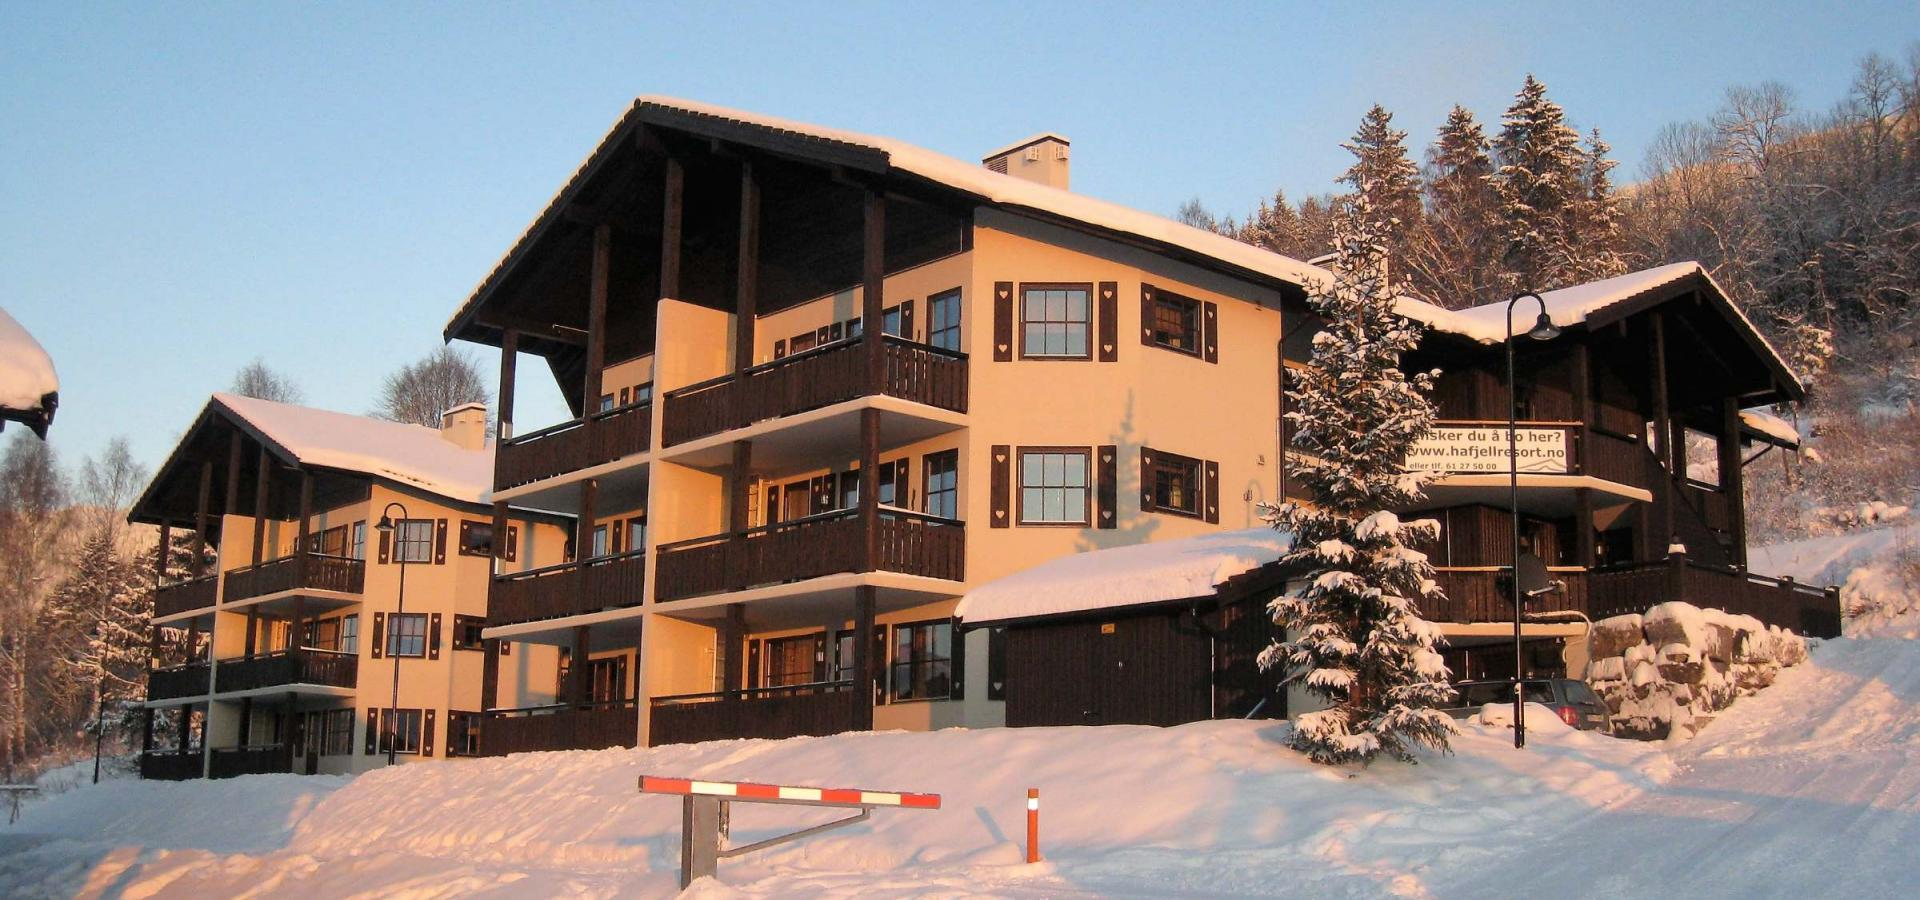 Alpin apartments in Hafjell